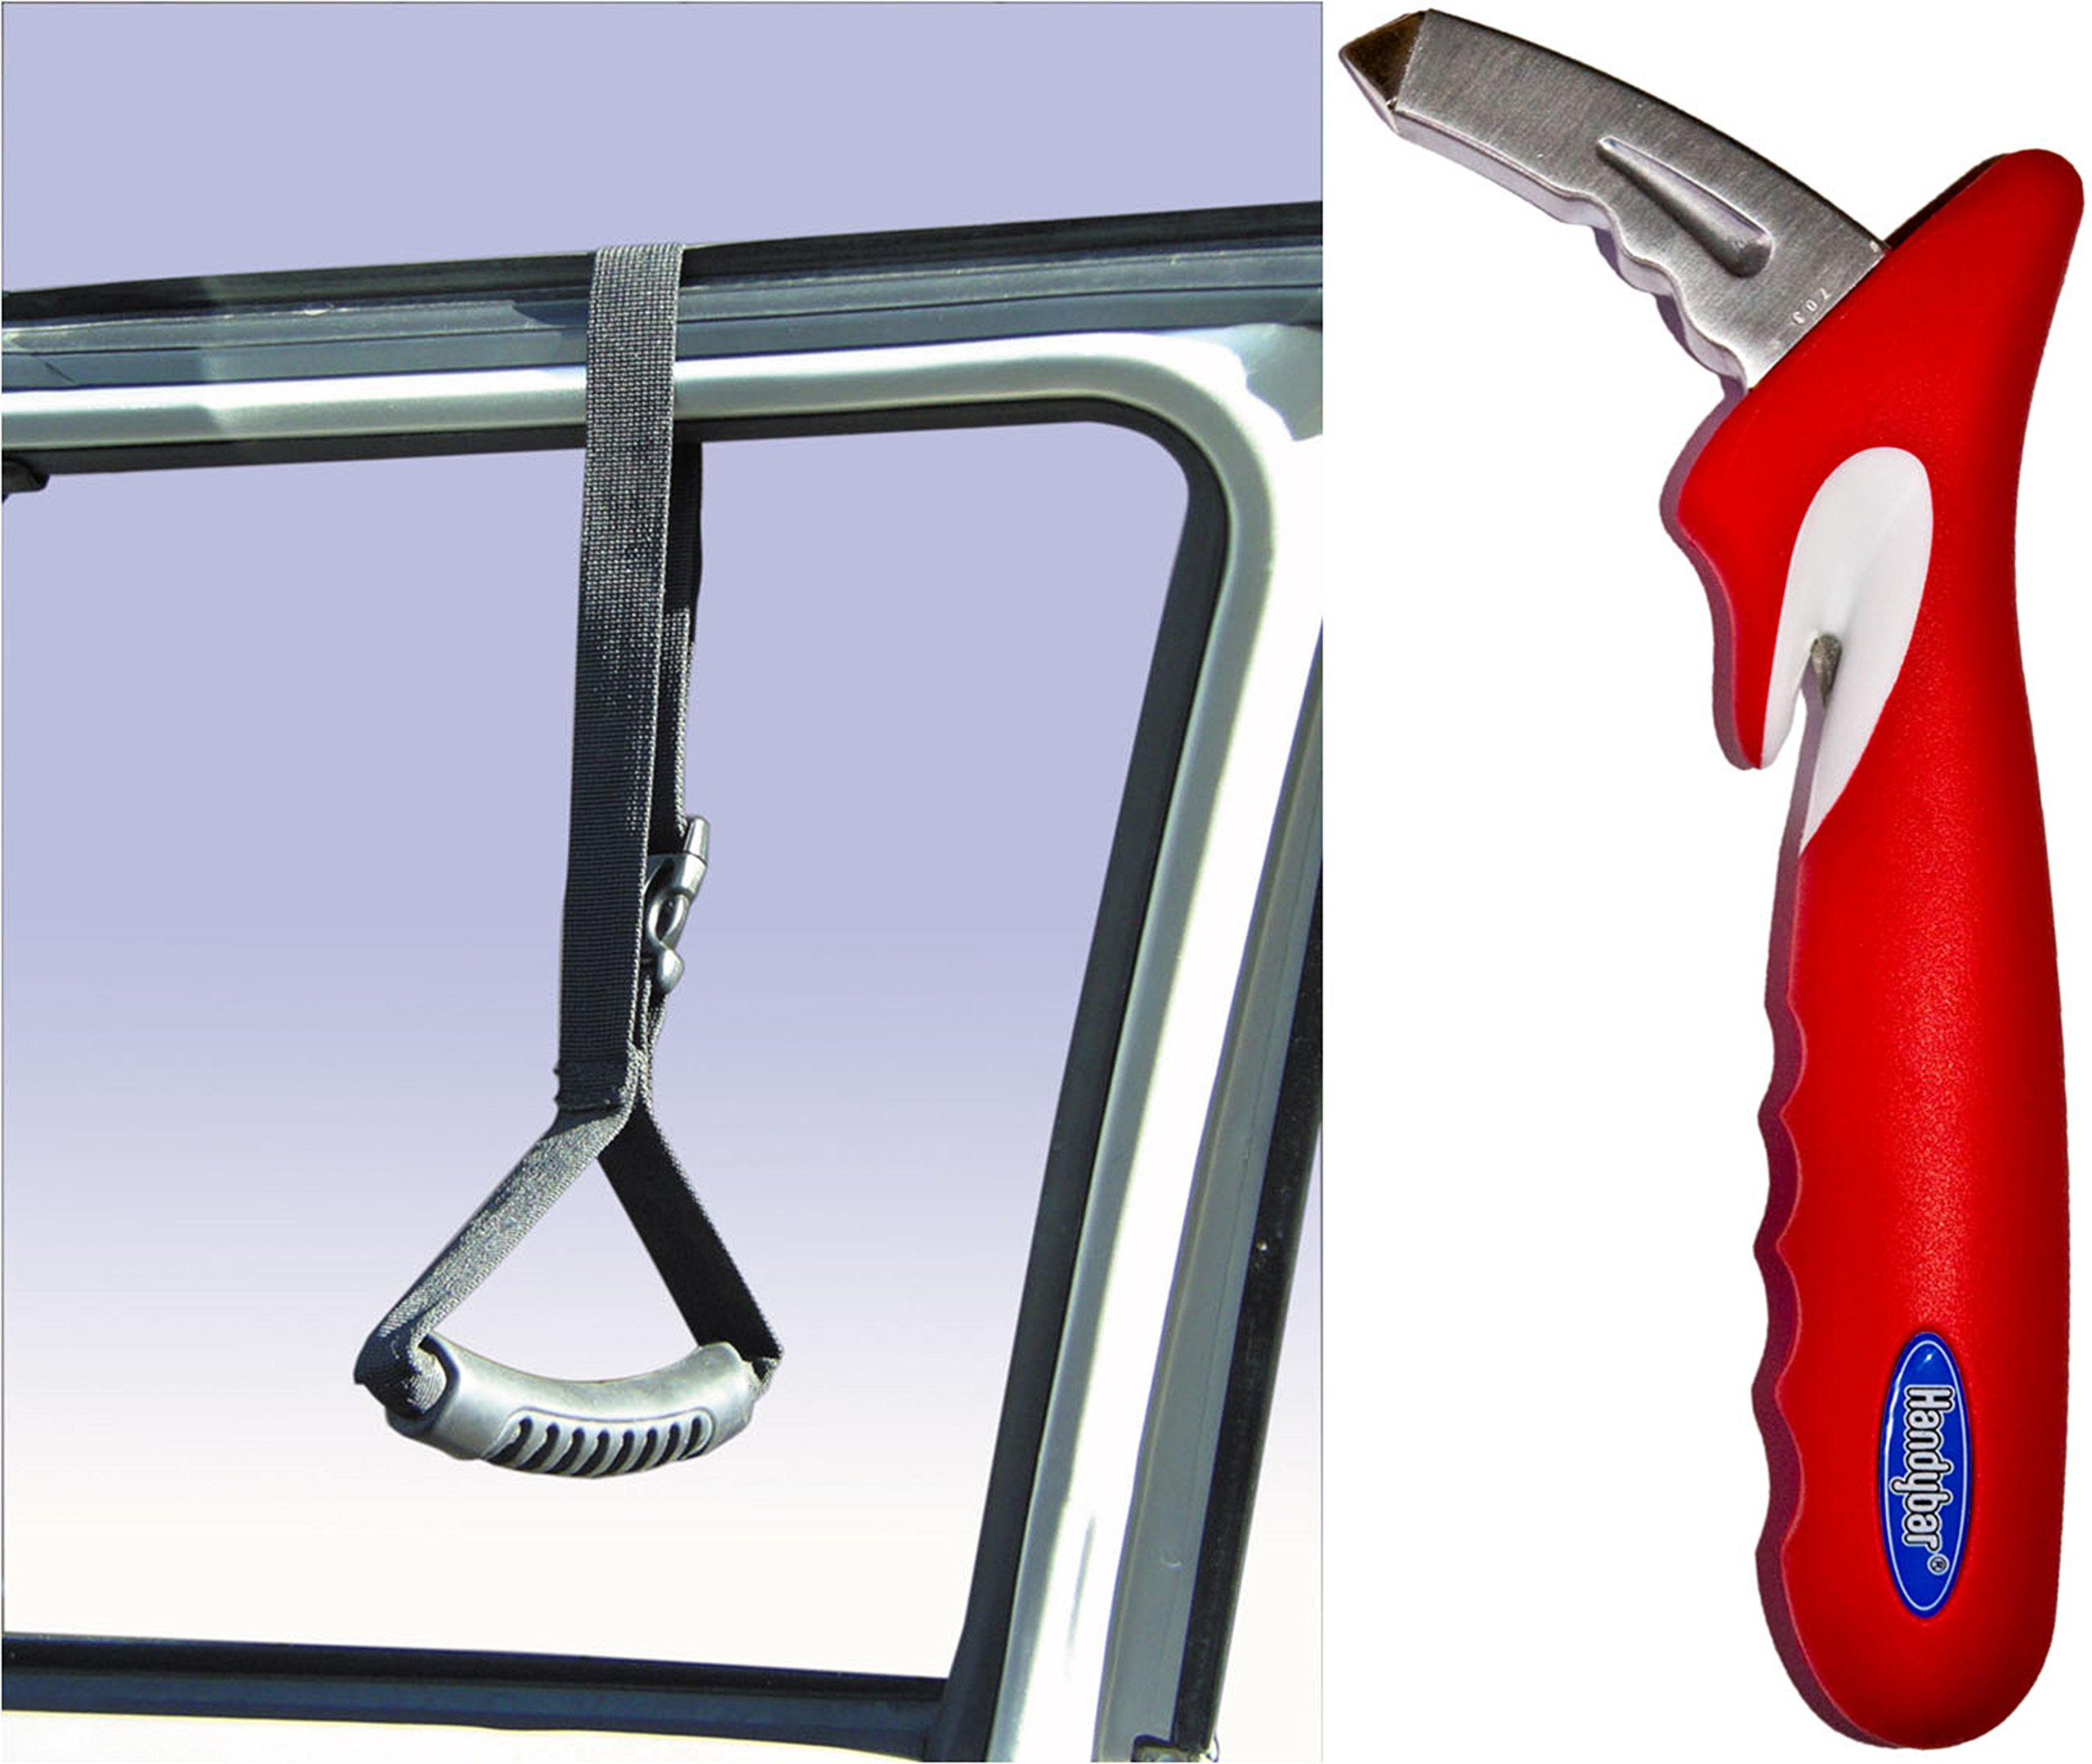 Stander Handybar & CarCaddie Combo Pack - The Original Automotive Standing Aid and Car Safety Support Handle + Emergency Escape Tool